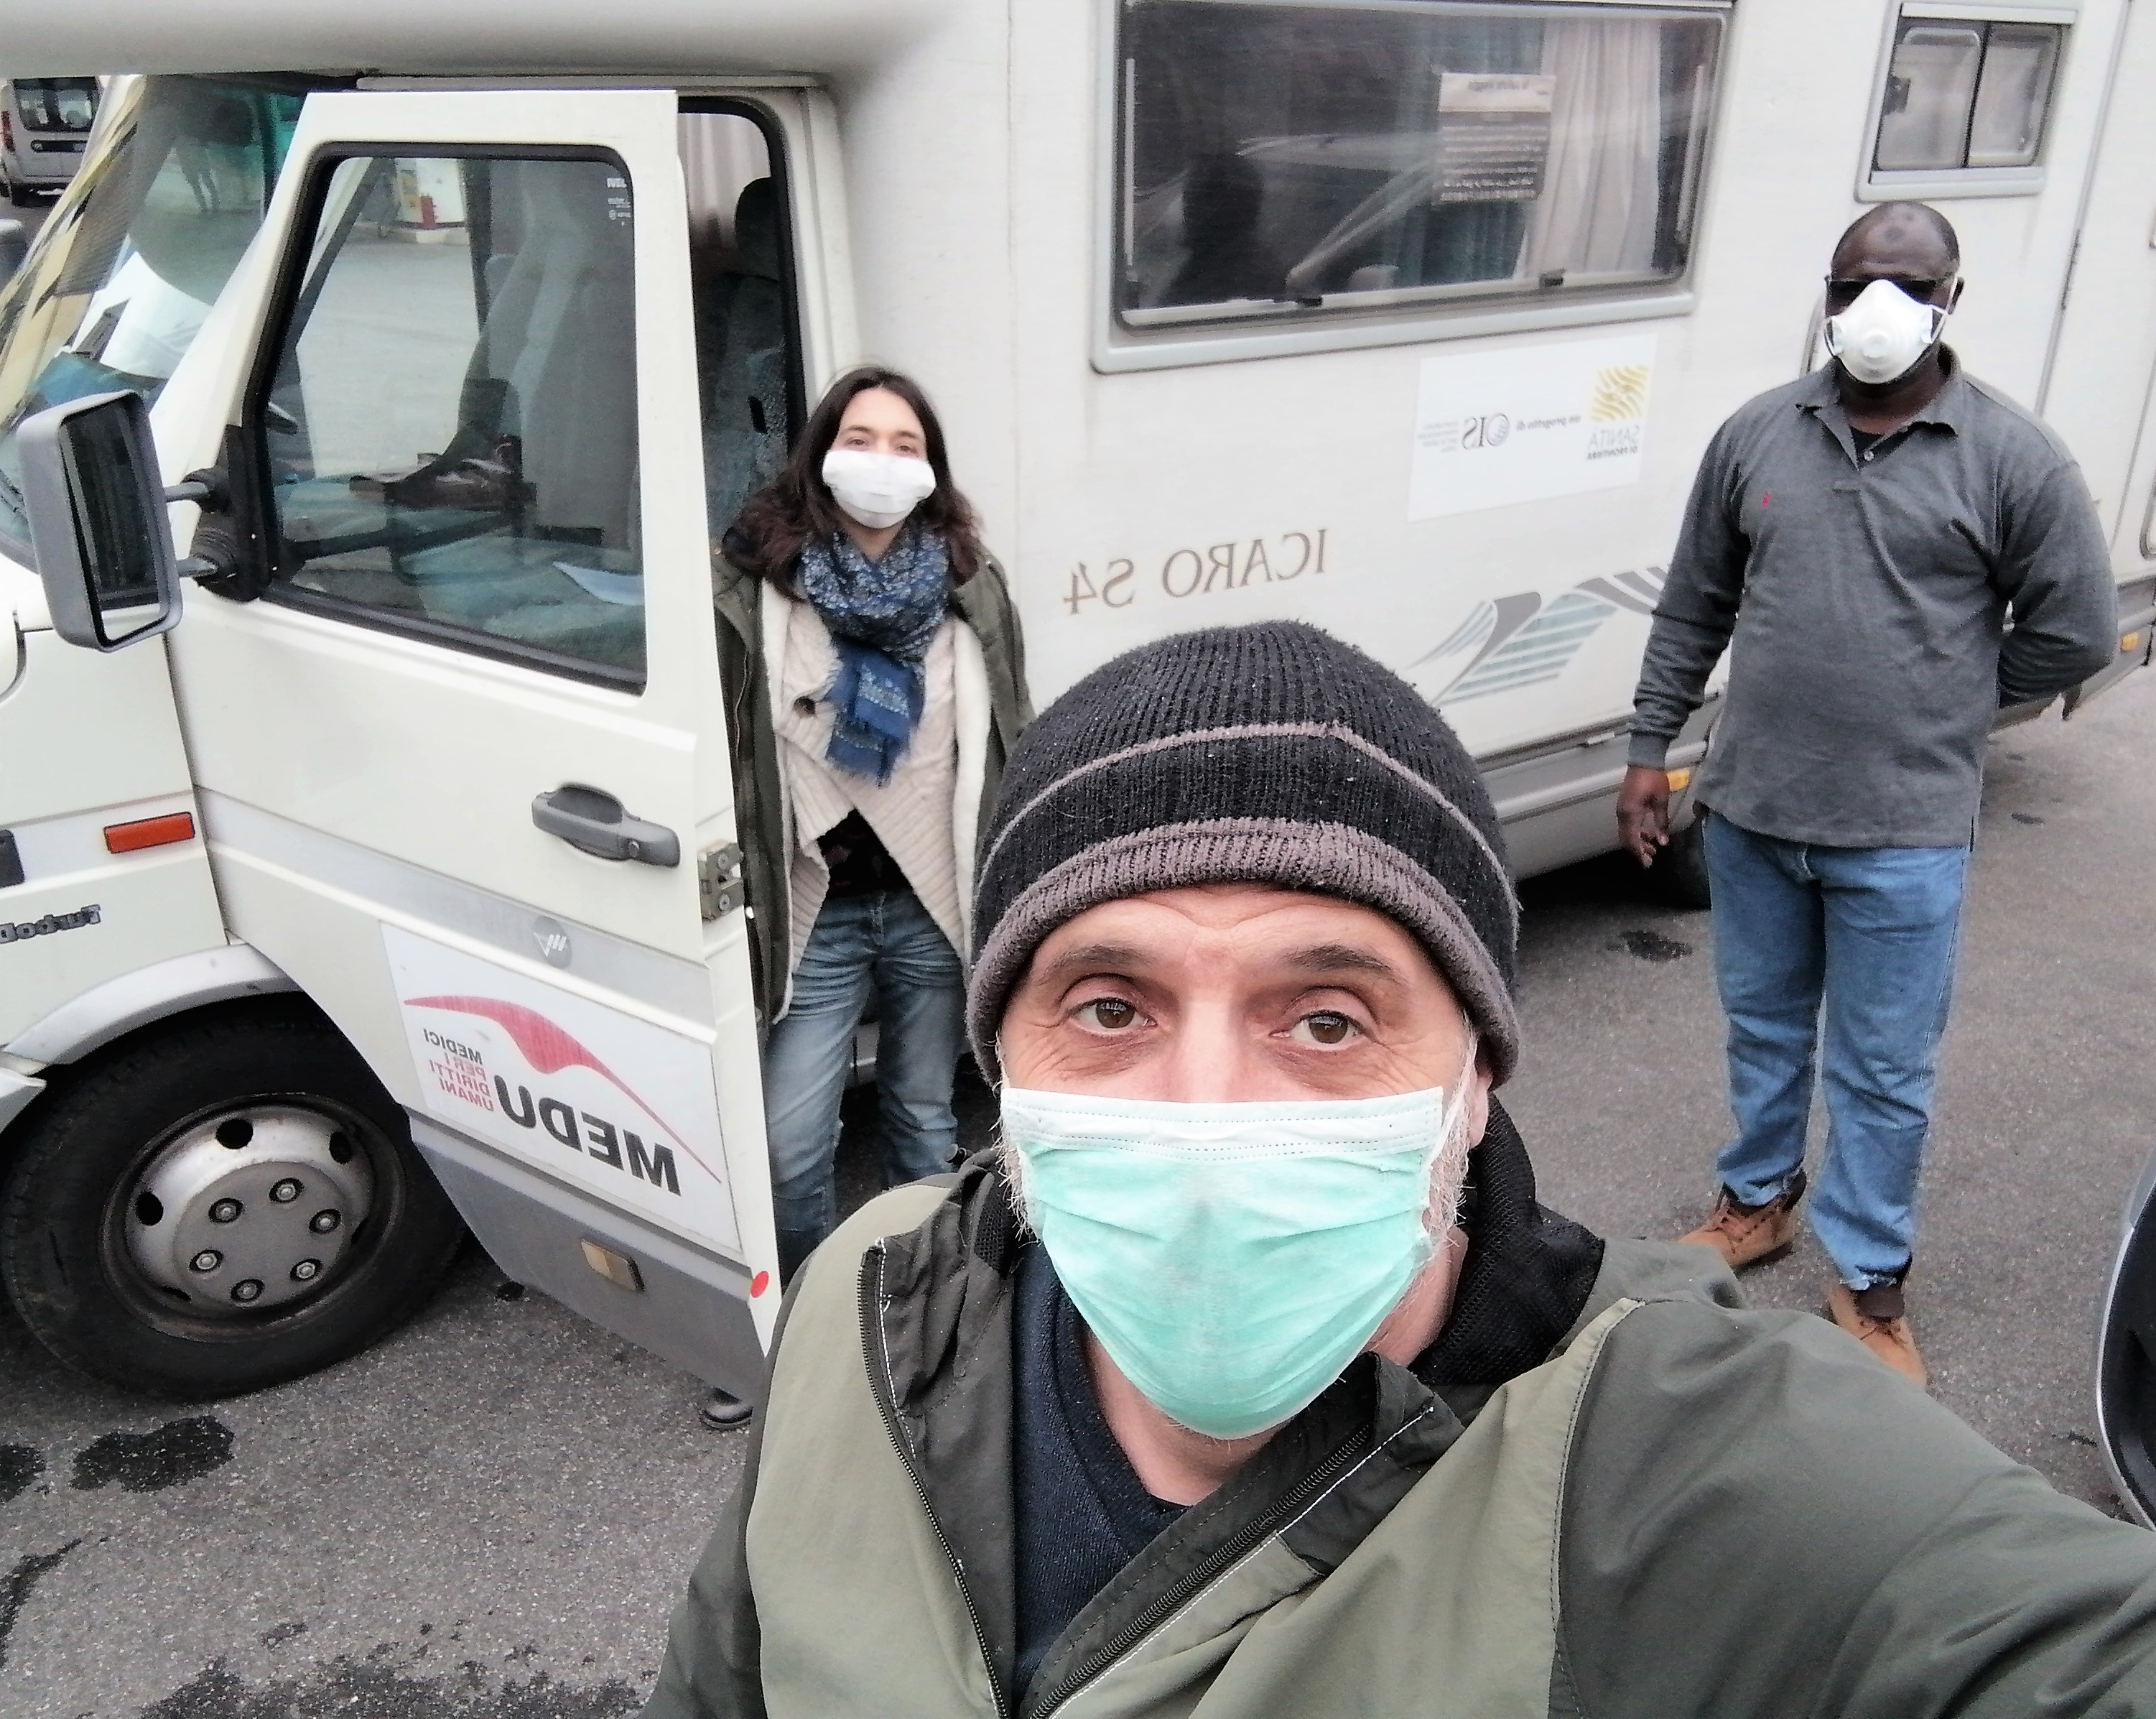 Italy refugee camp April 2020